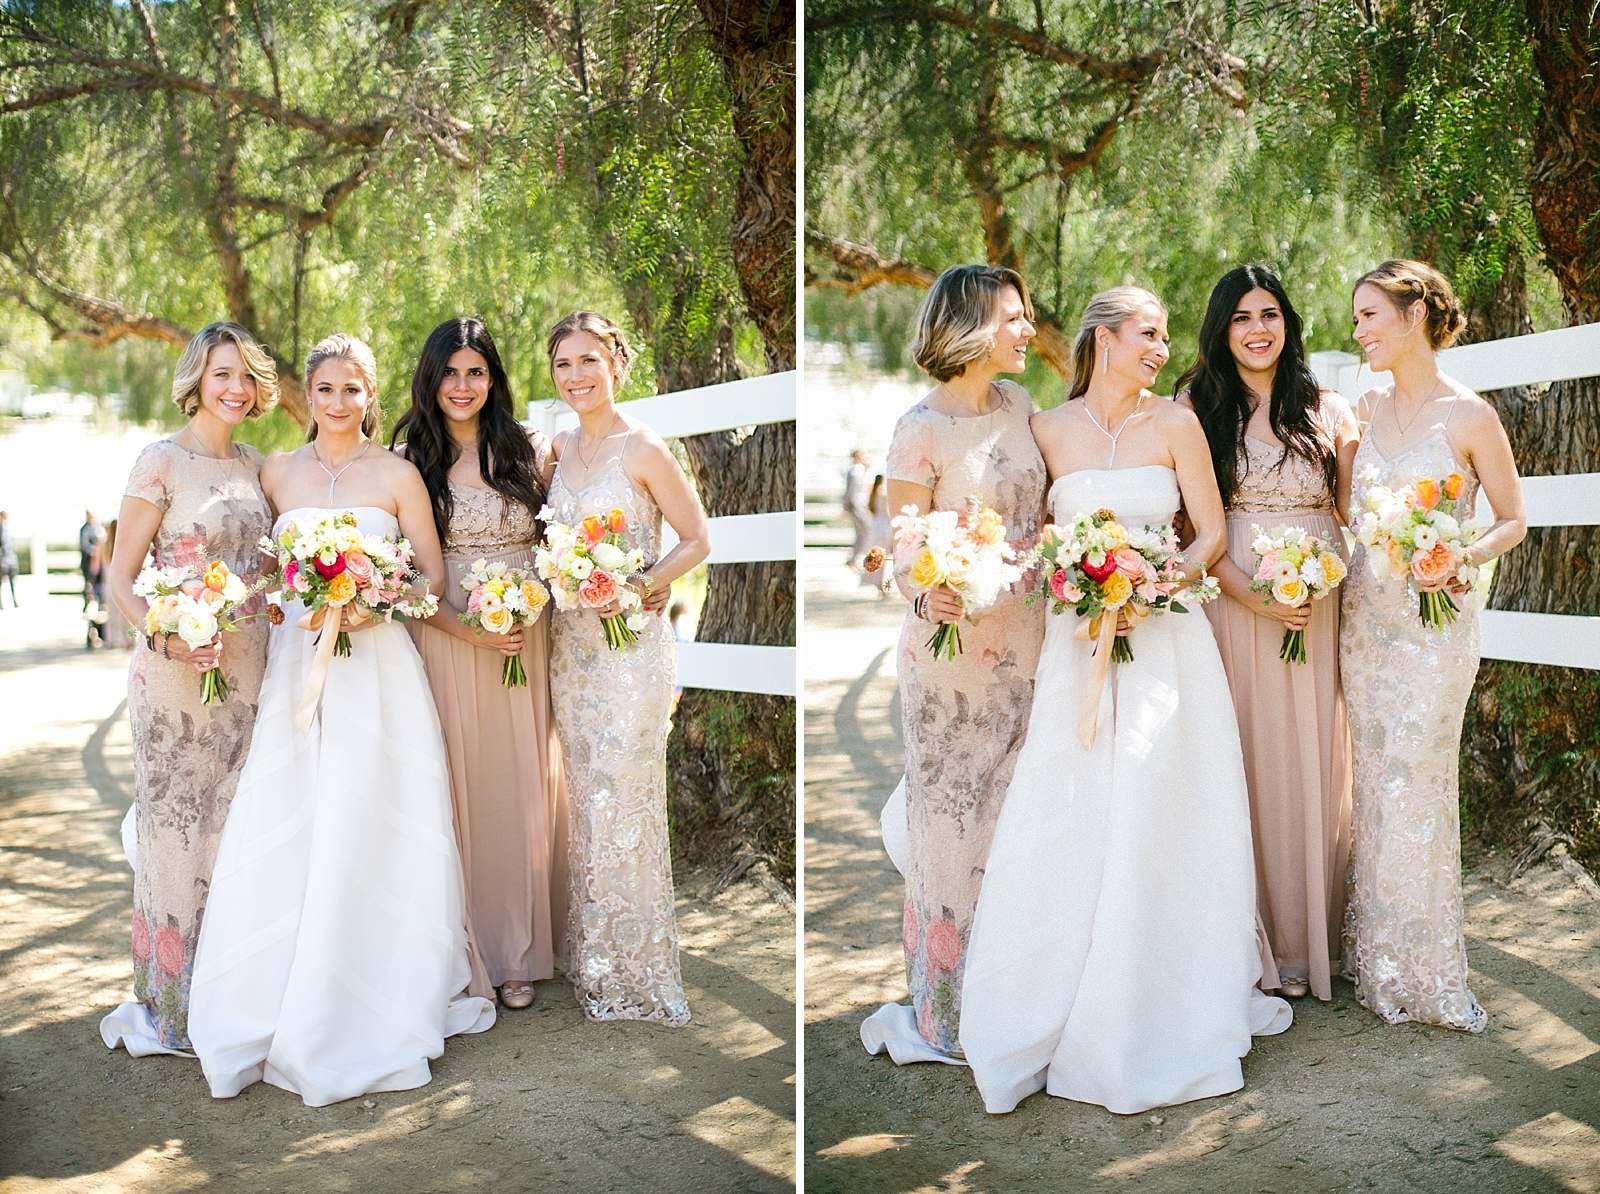 11-los-angeles-wedding-photography.jpg